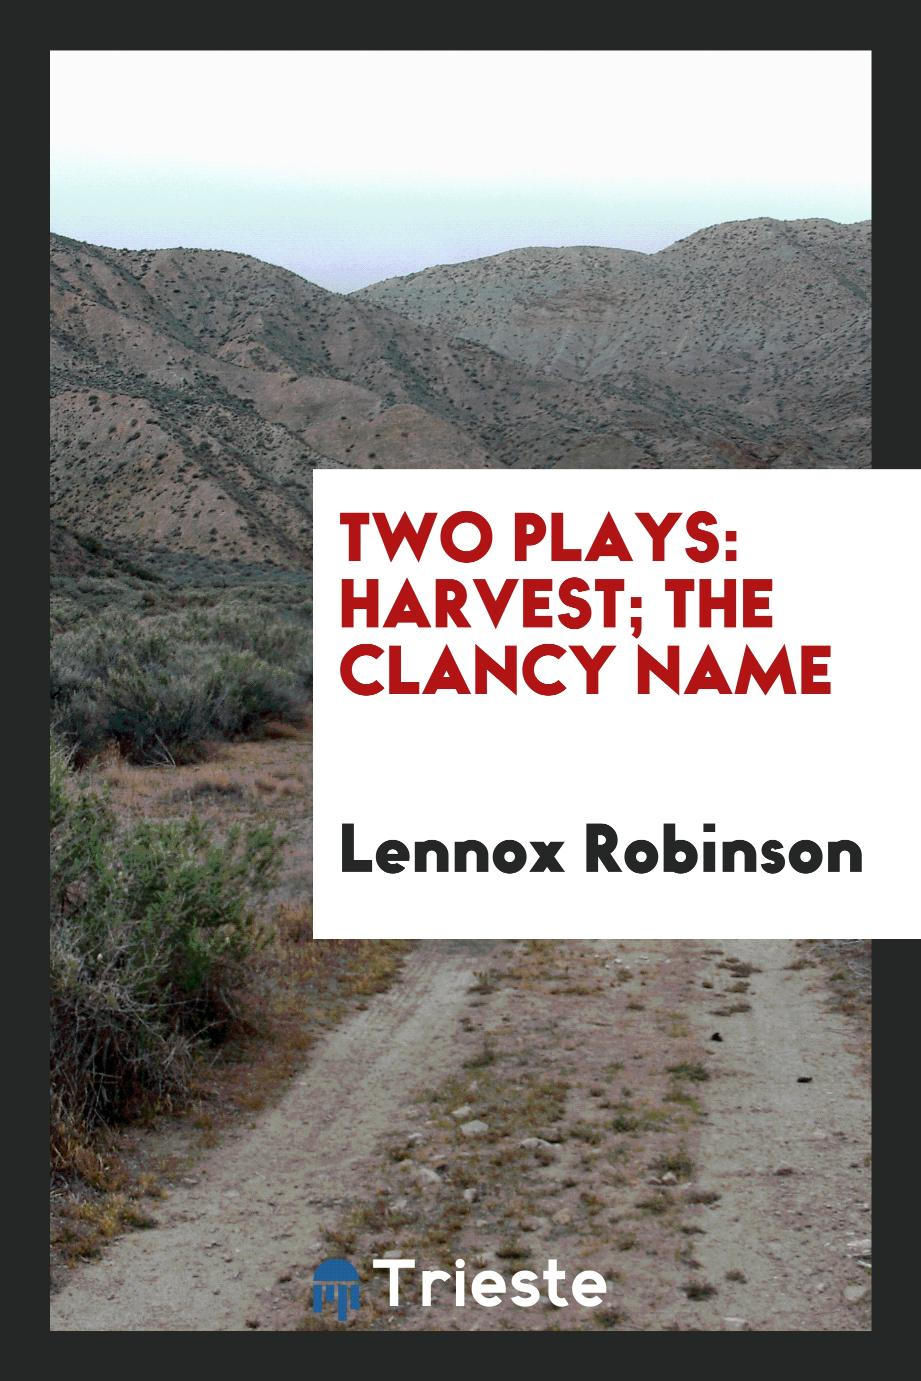 Two Plays: Harvest; The Clancy Name